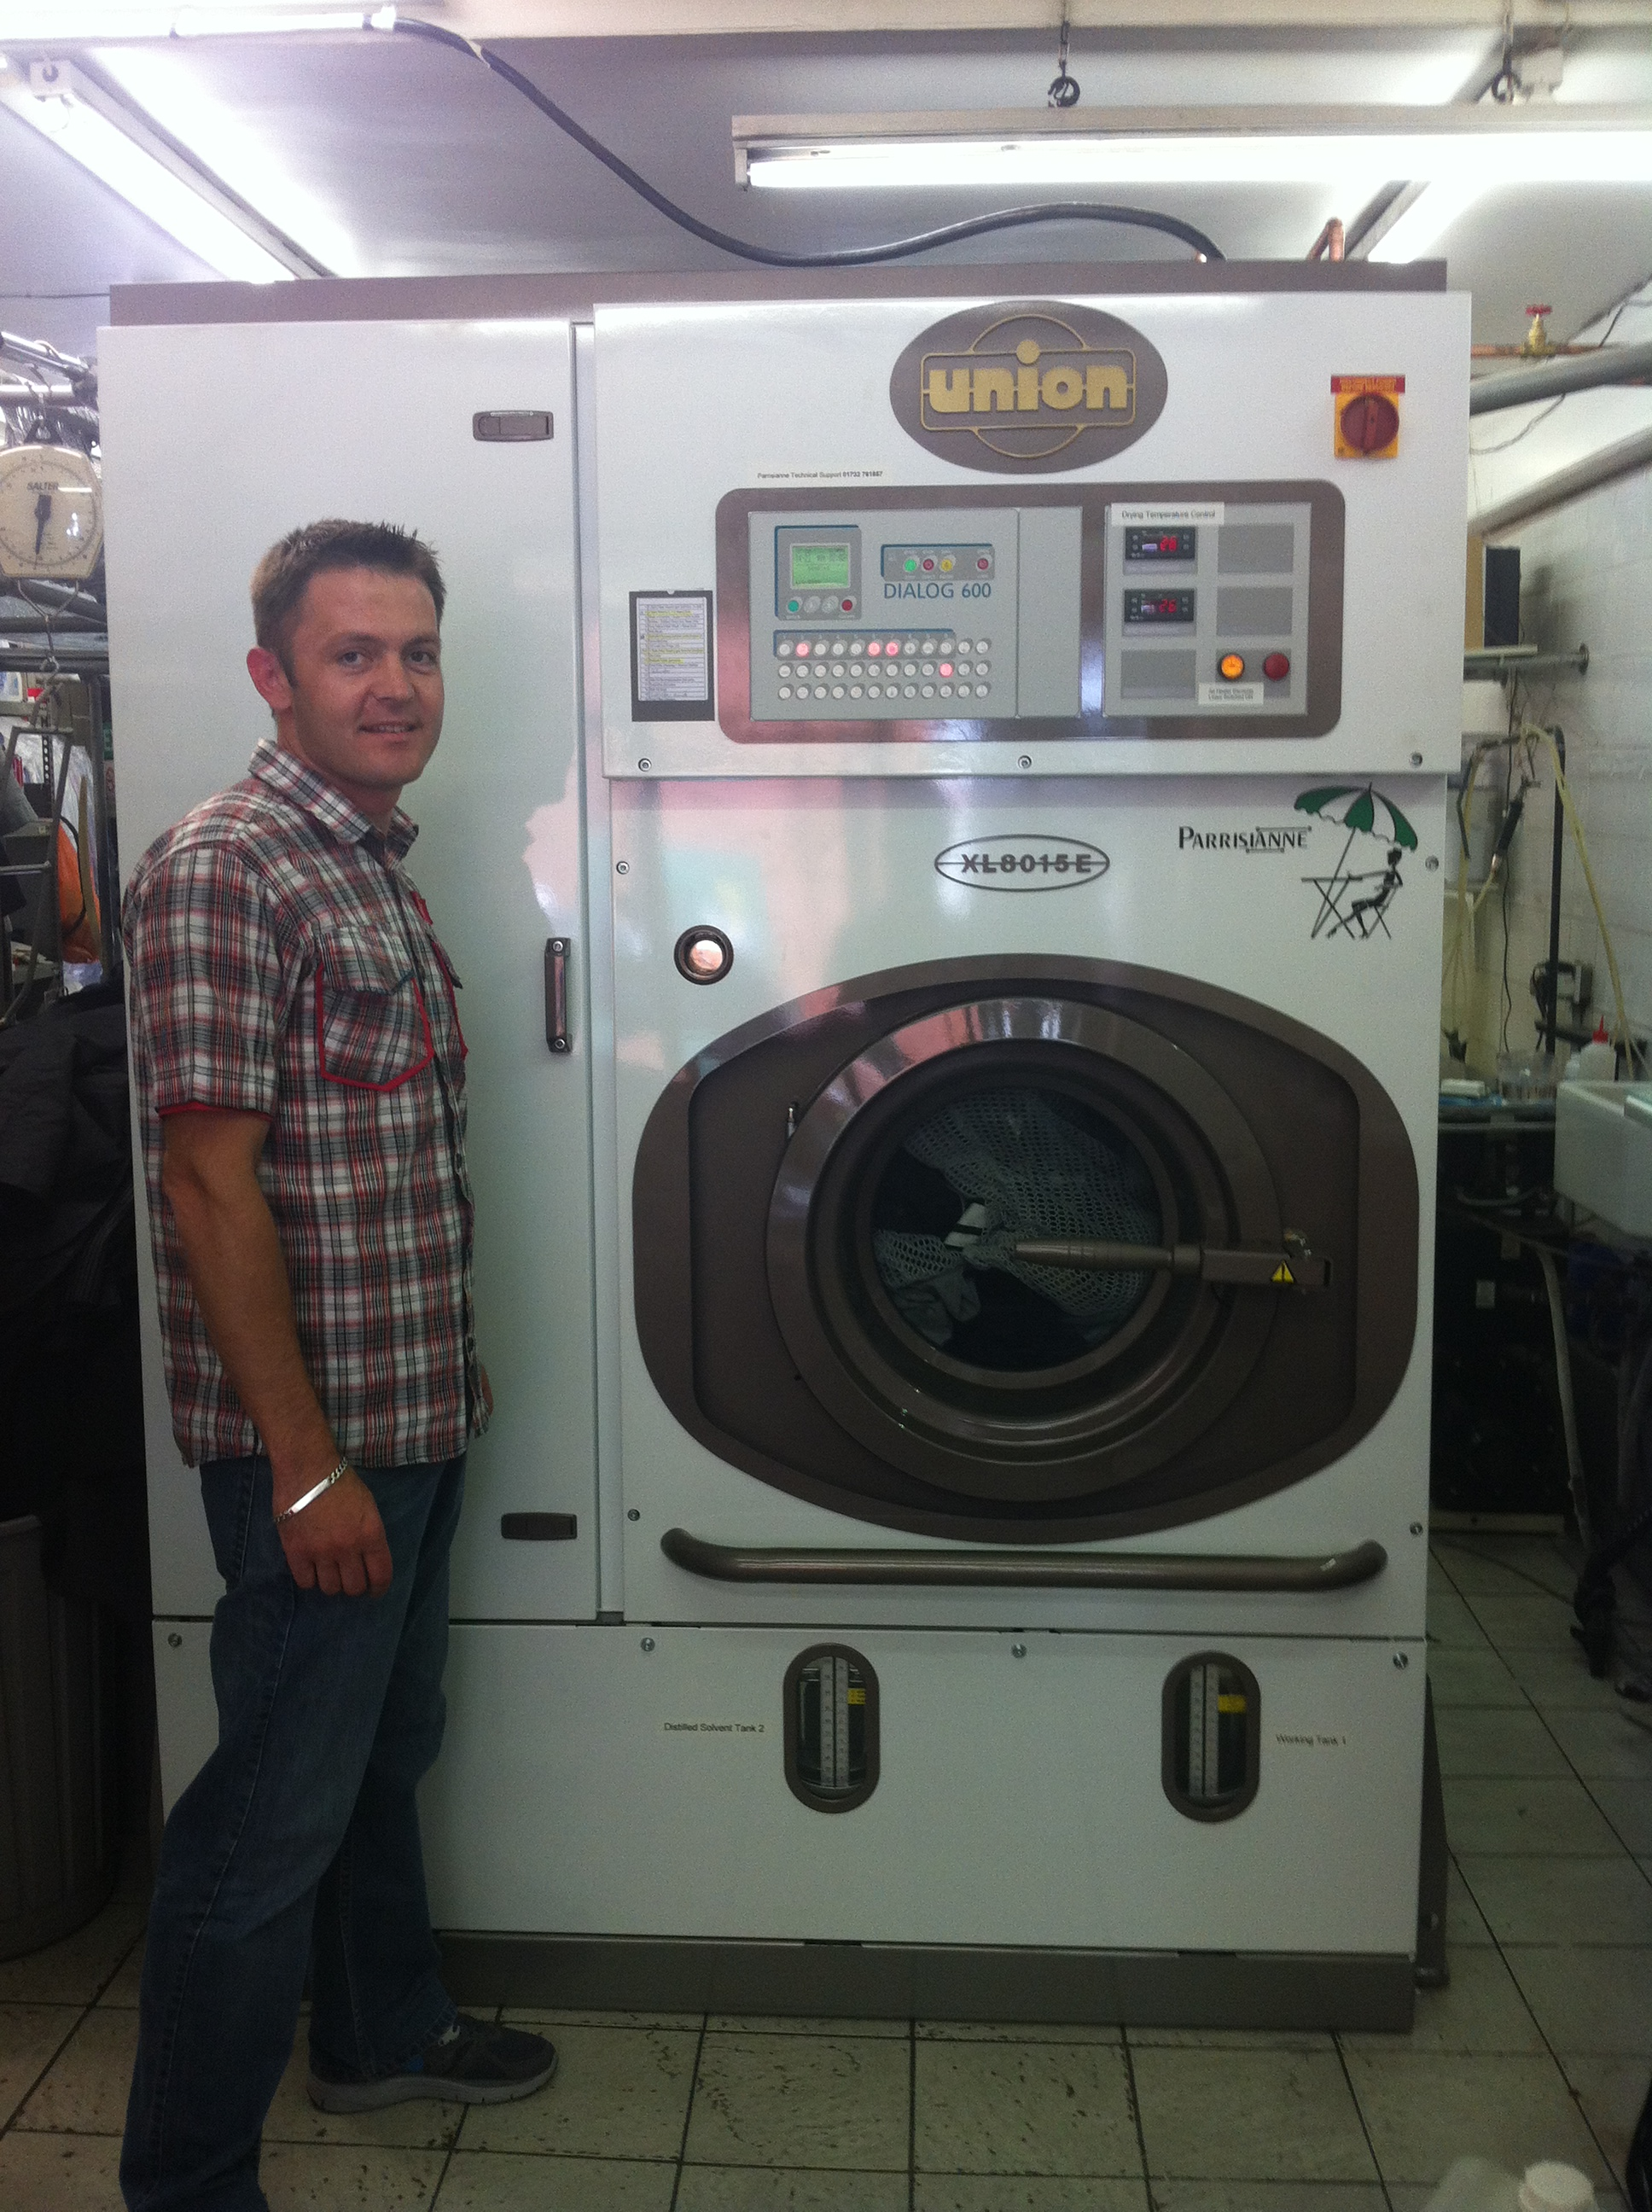 Dry Cleaning Equipment And Servicing Latest News